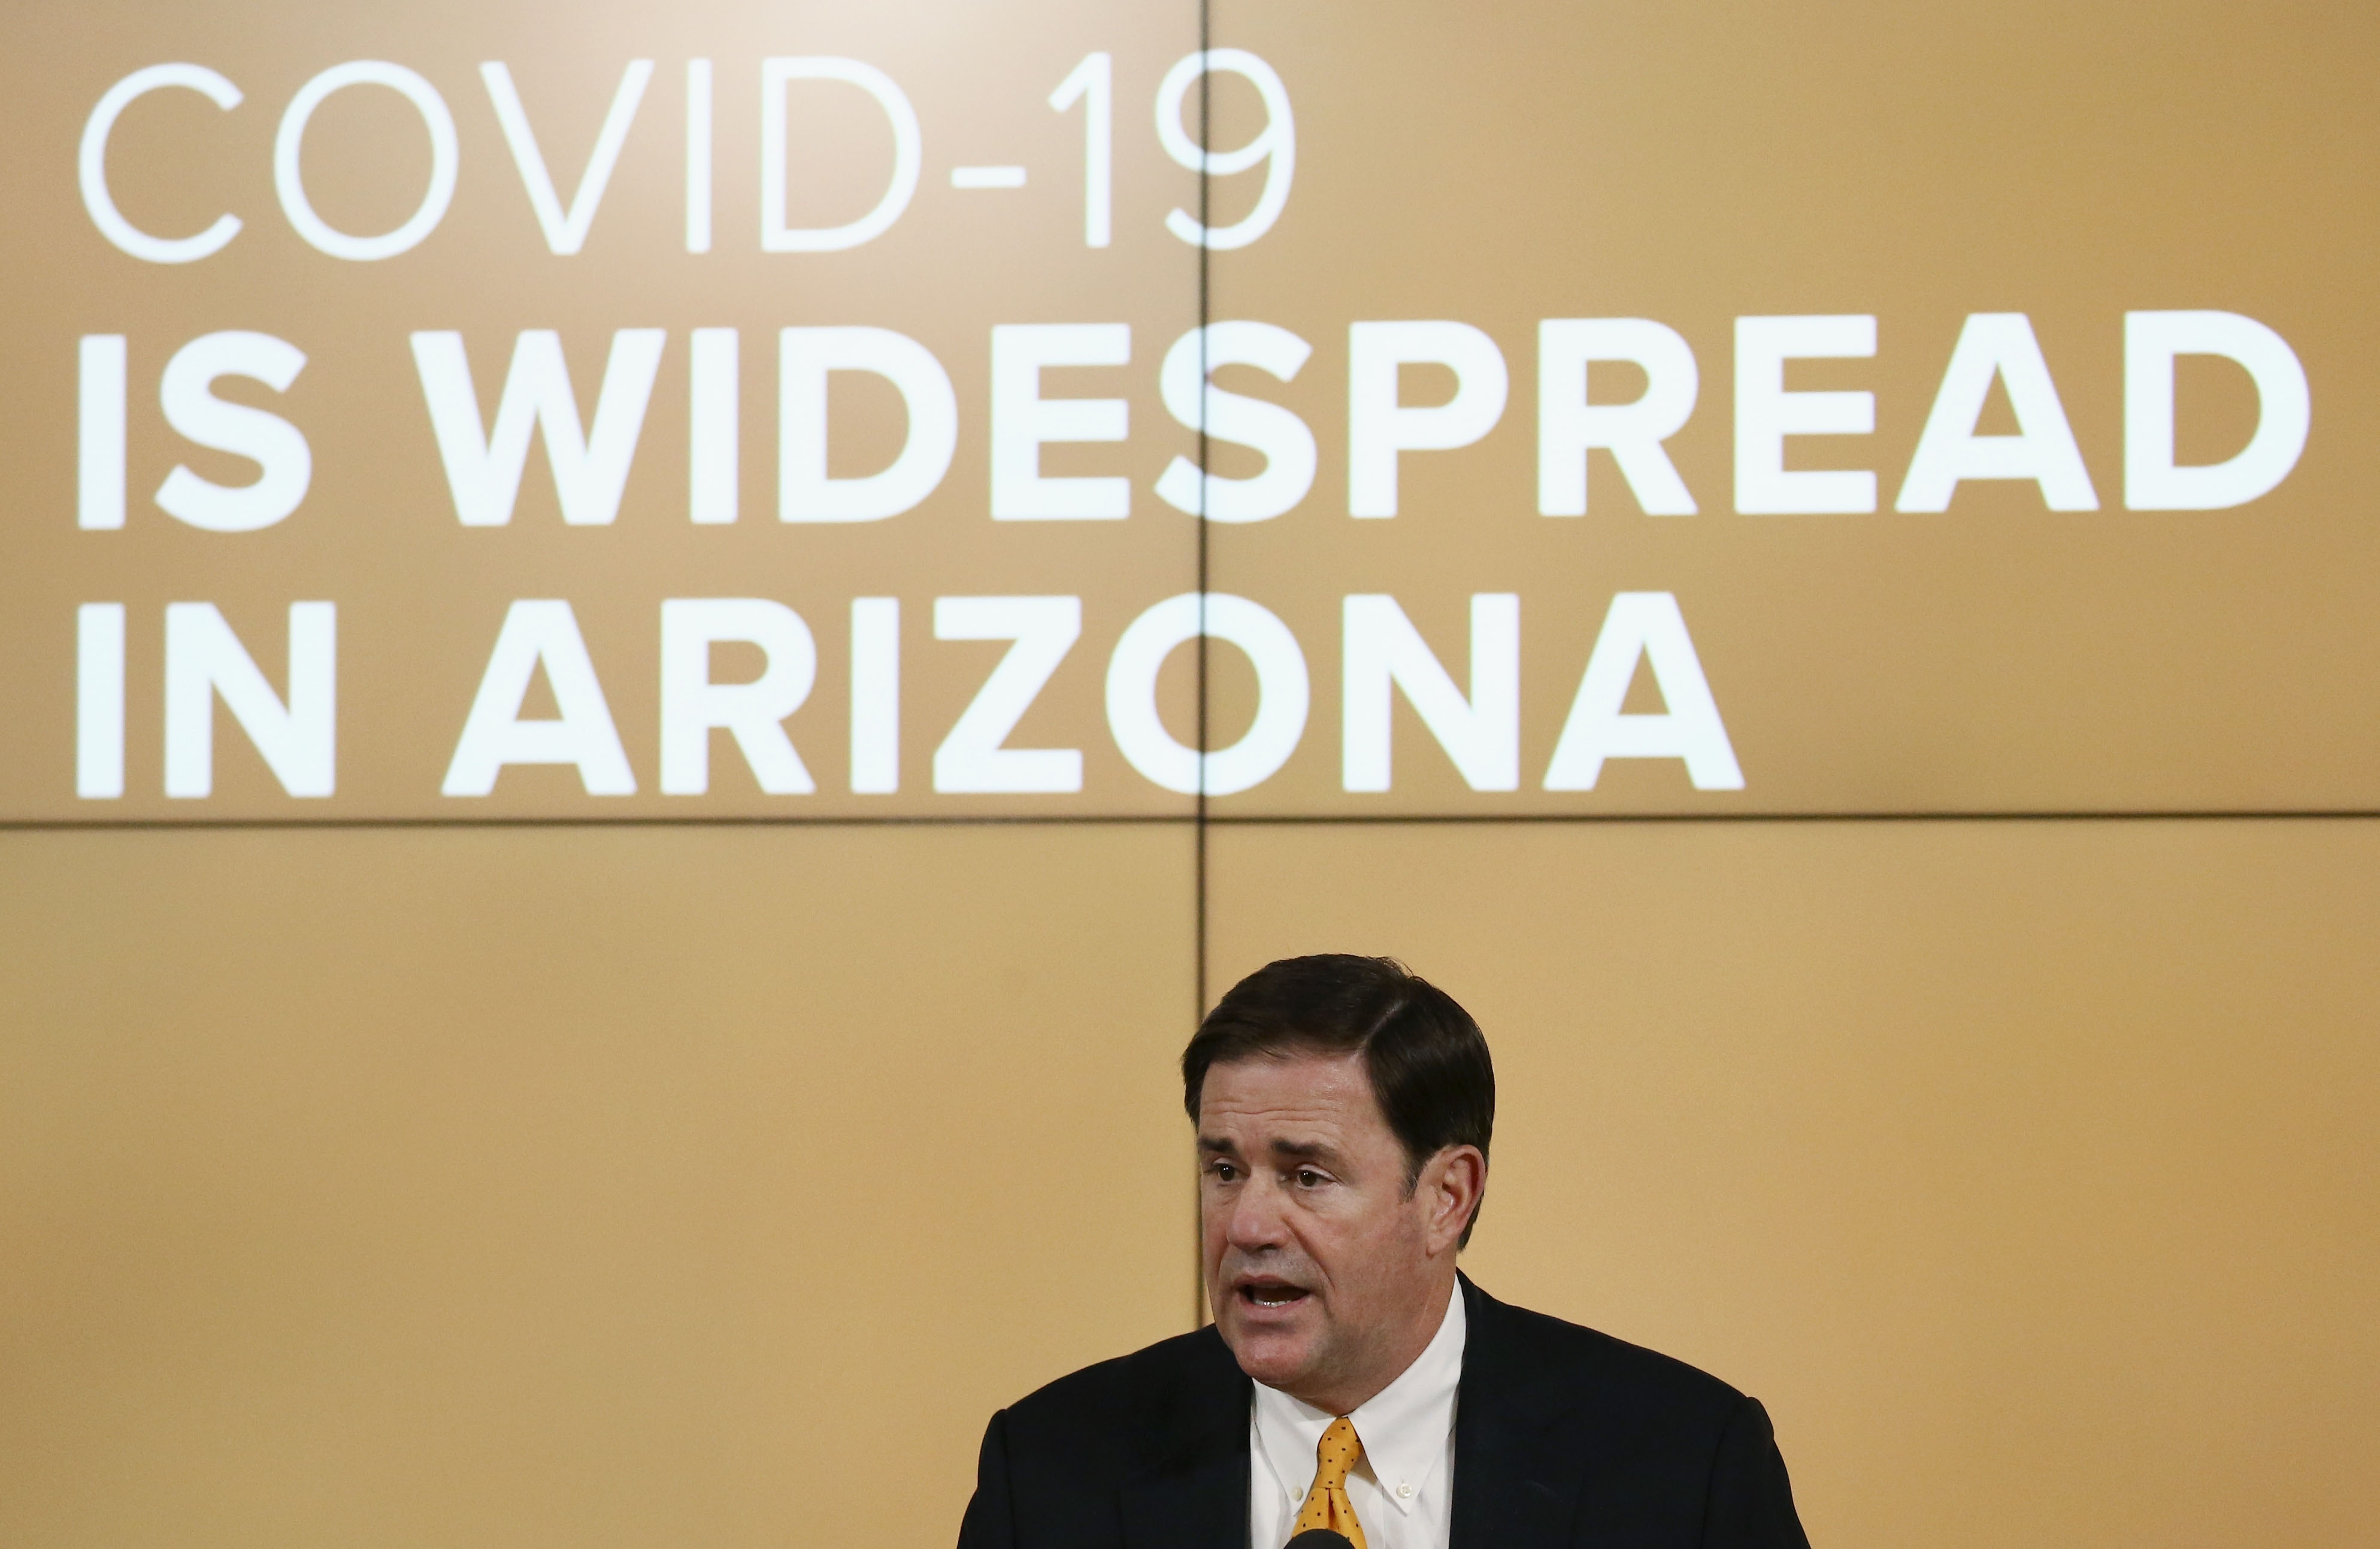 Arizona Gov. Doug Ducey speaks at a news conference in Phoenix on June 25.